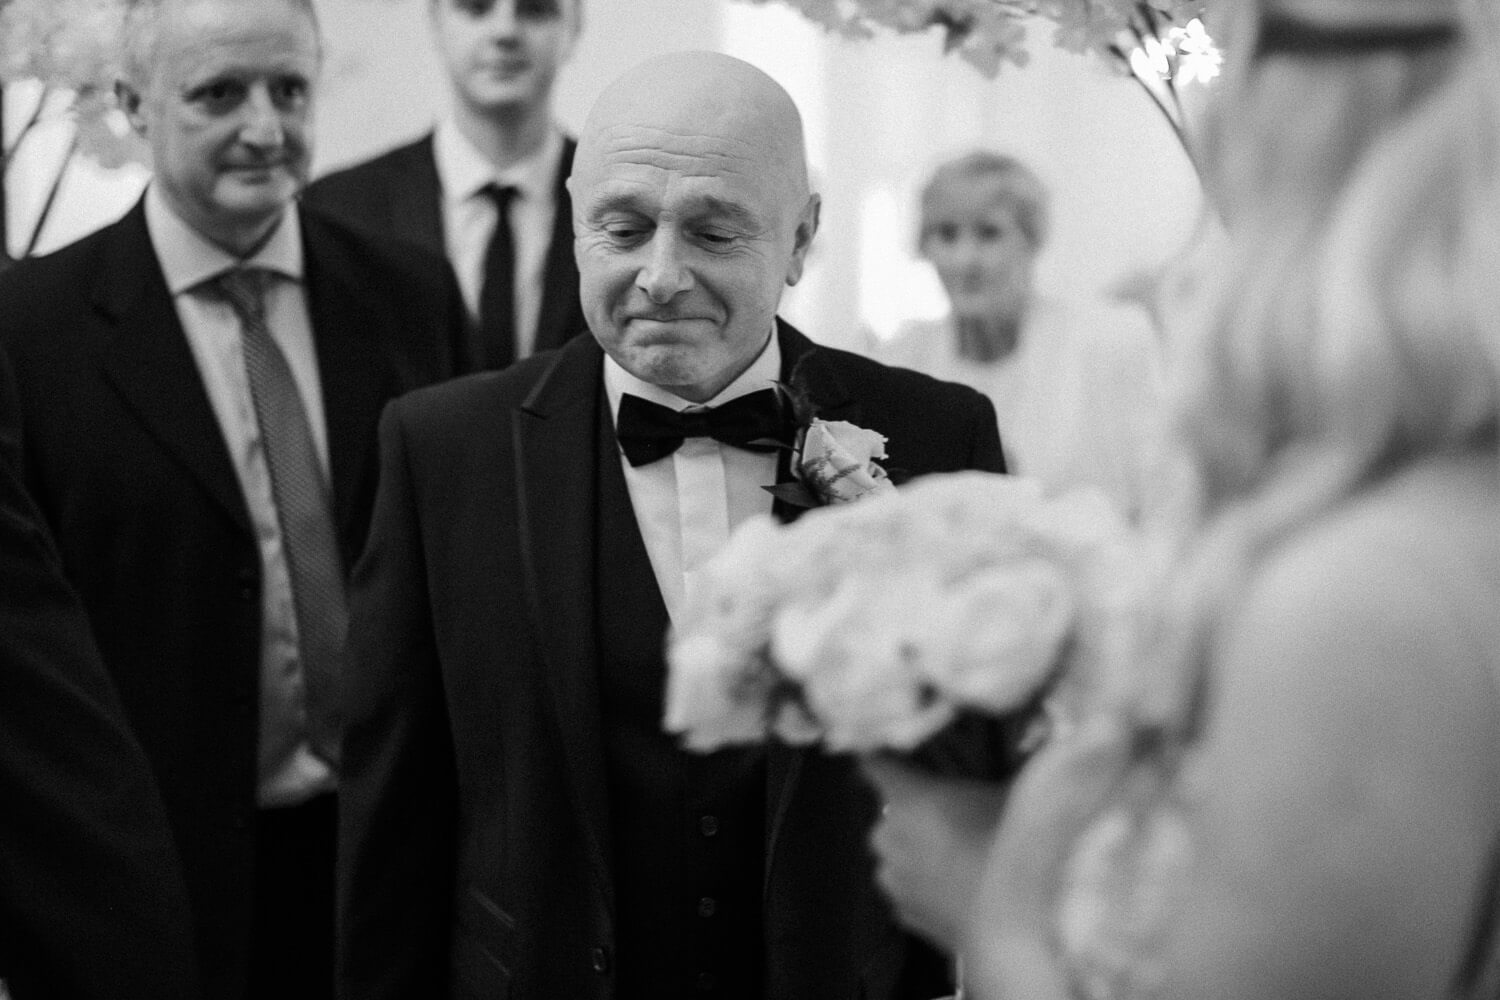 Father of groom fighting back tears